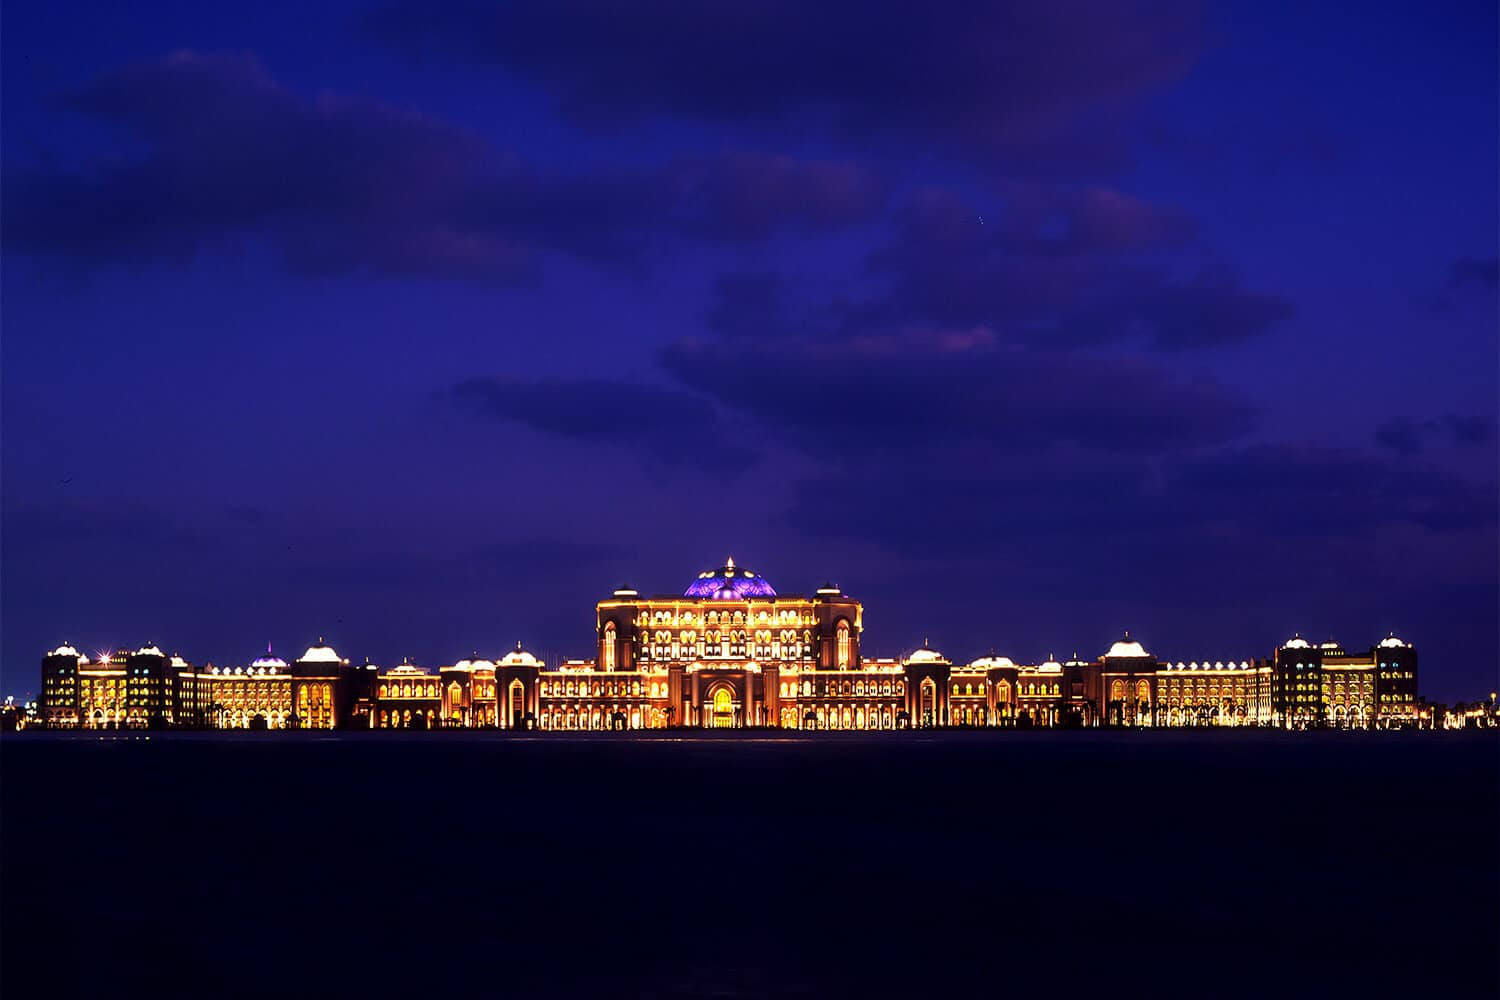 Emirates Palace Hotel & Conference Center